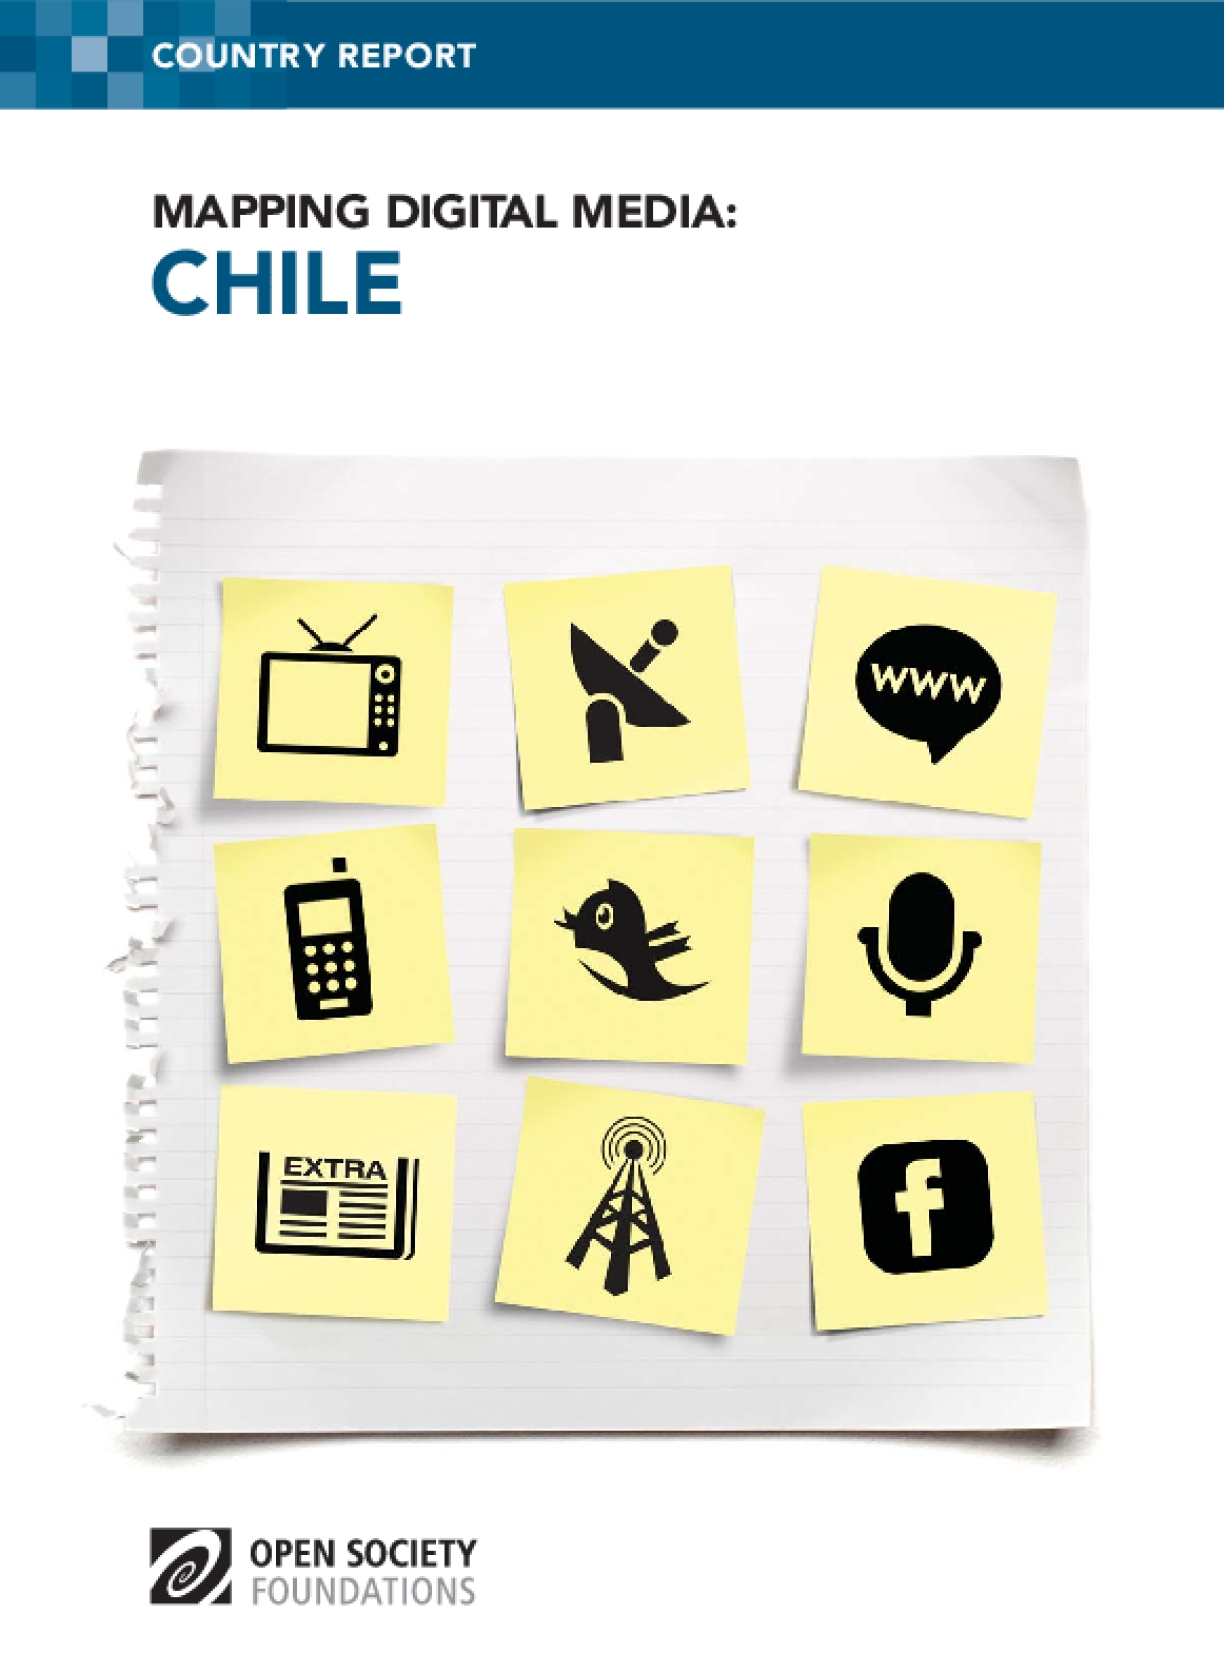 Mapping Digital Media: Chile